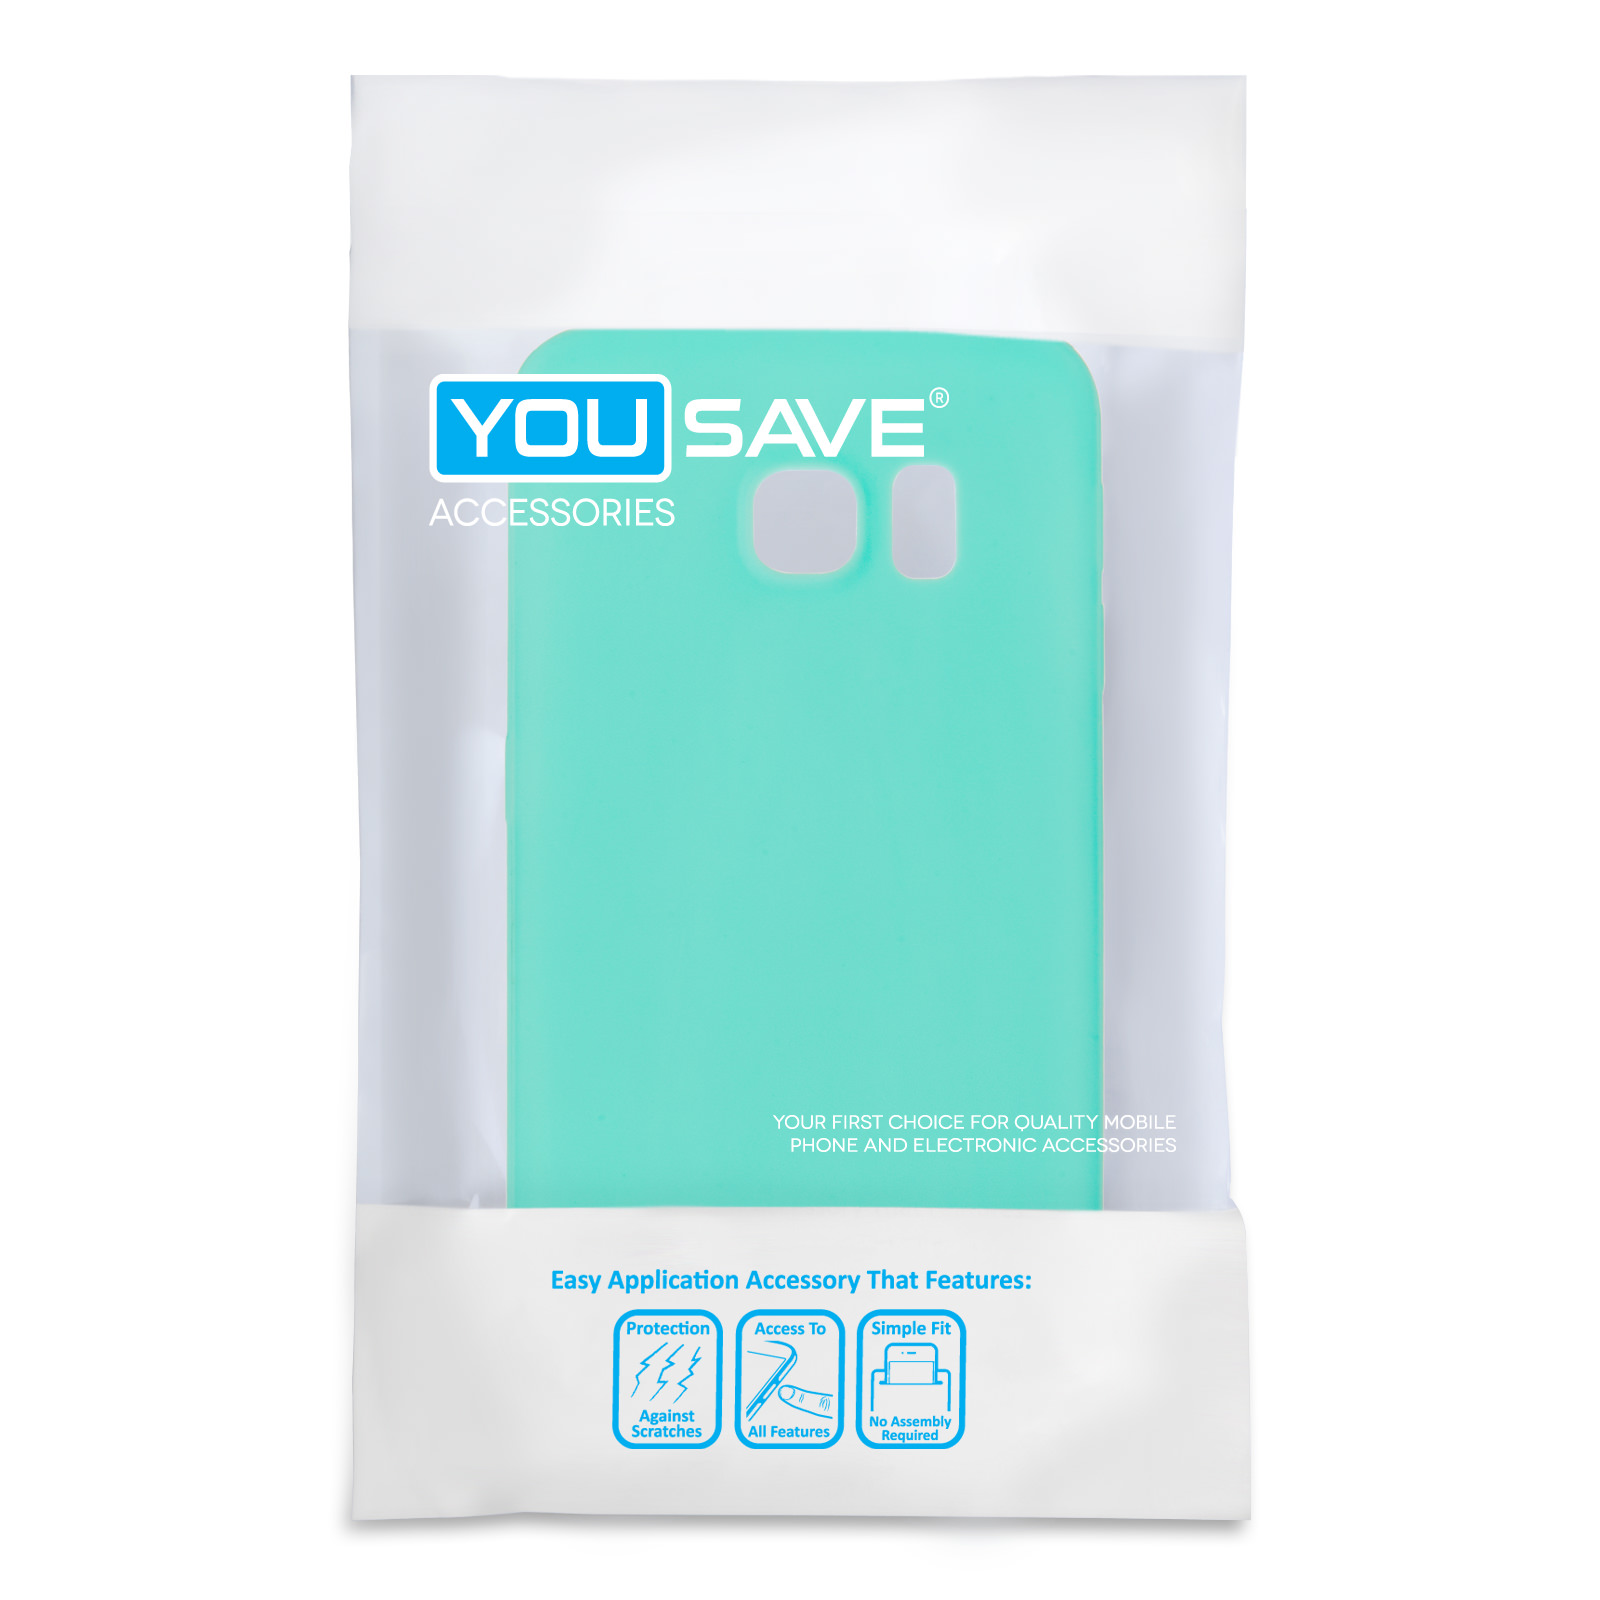 Yousave Accessories Samsung Galaxy S6 Edge New Slim Ultra Thin Gel - Solid Light Blue (Mint Green) Case